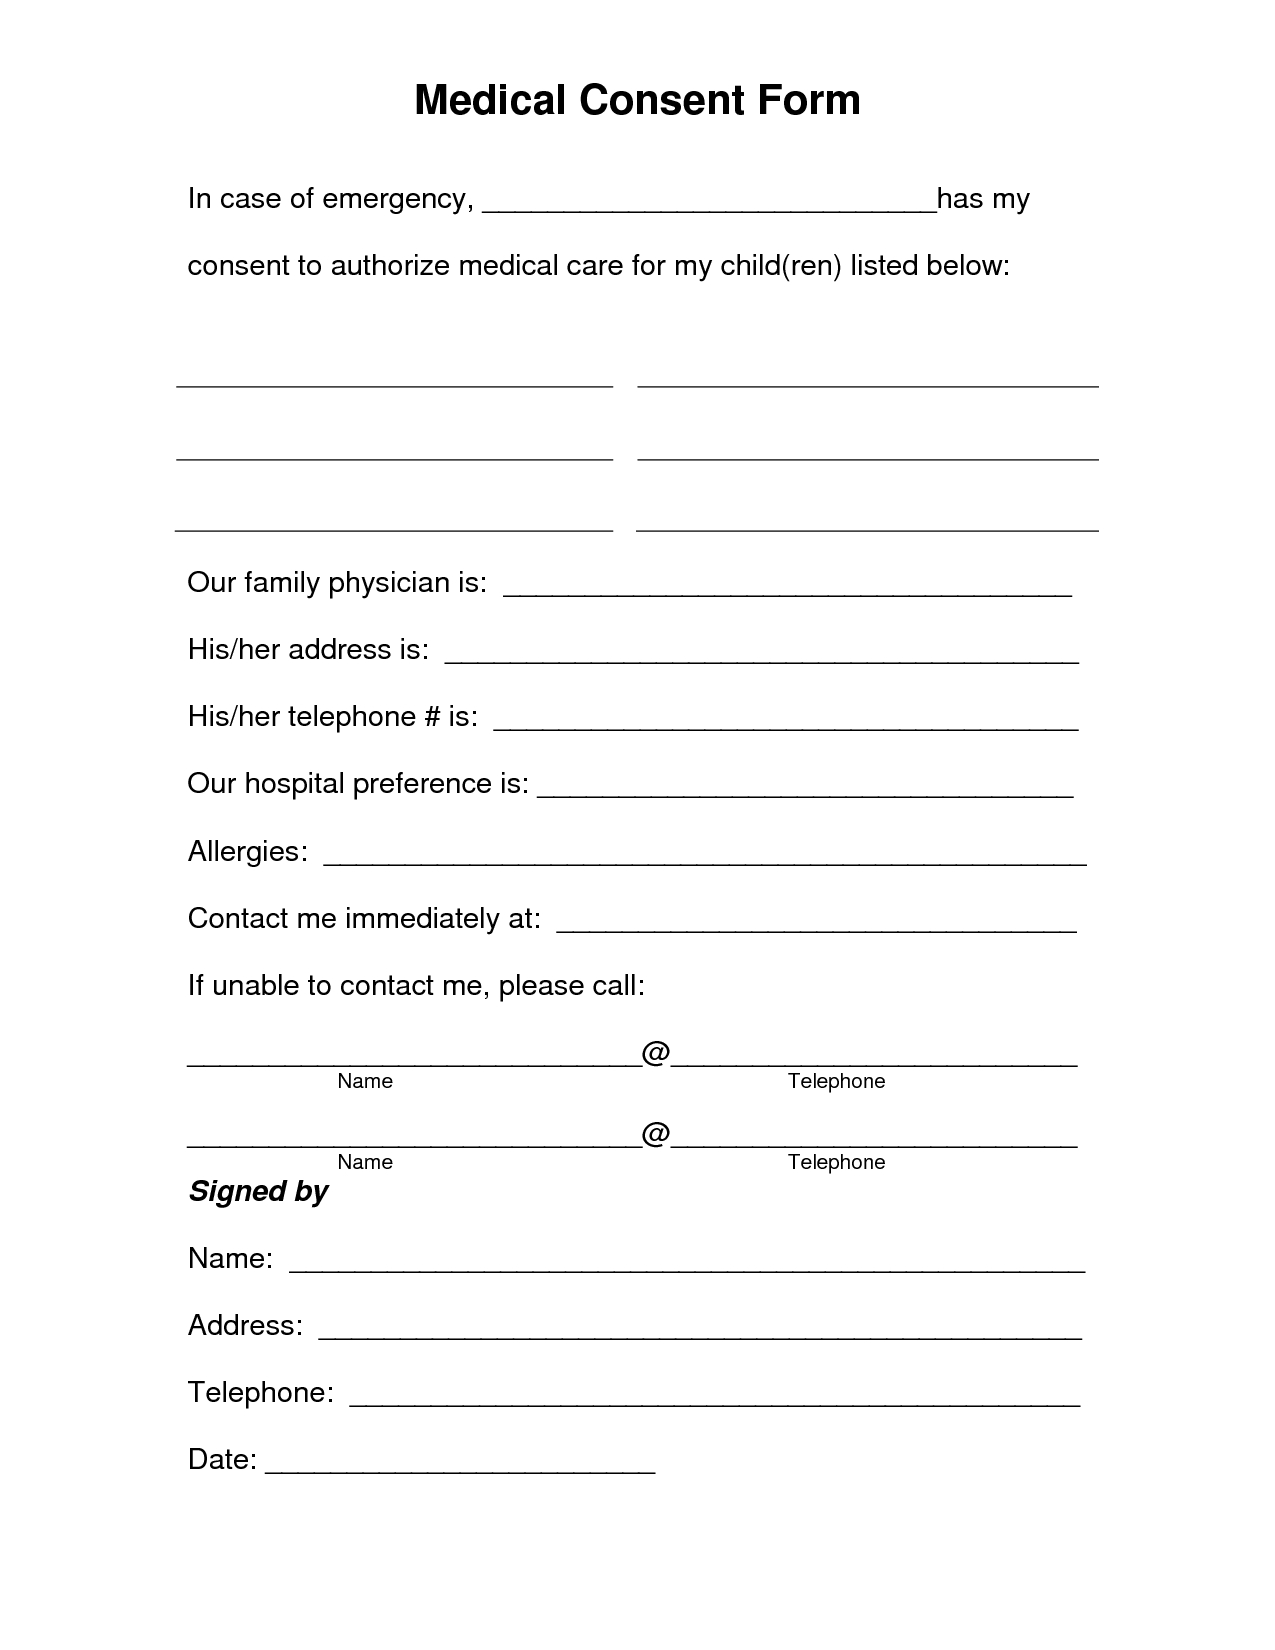 Free Printable Medical Consent Form   Free Medical Consent Form - Free Printable Medical Forms Kit